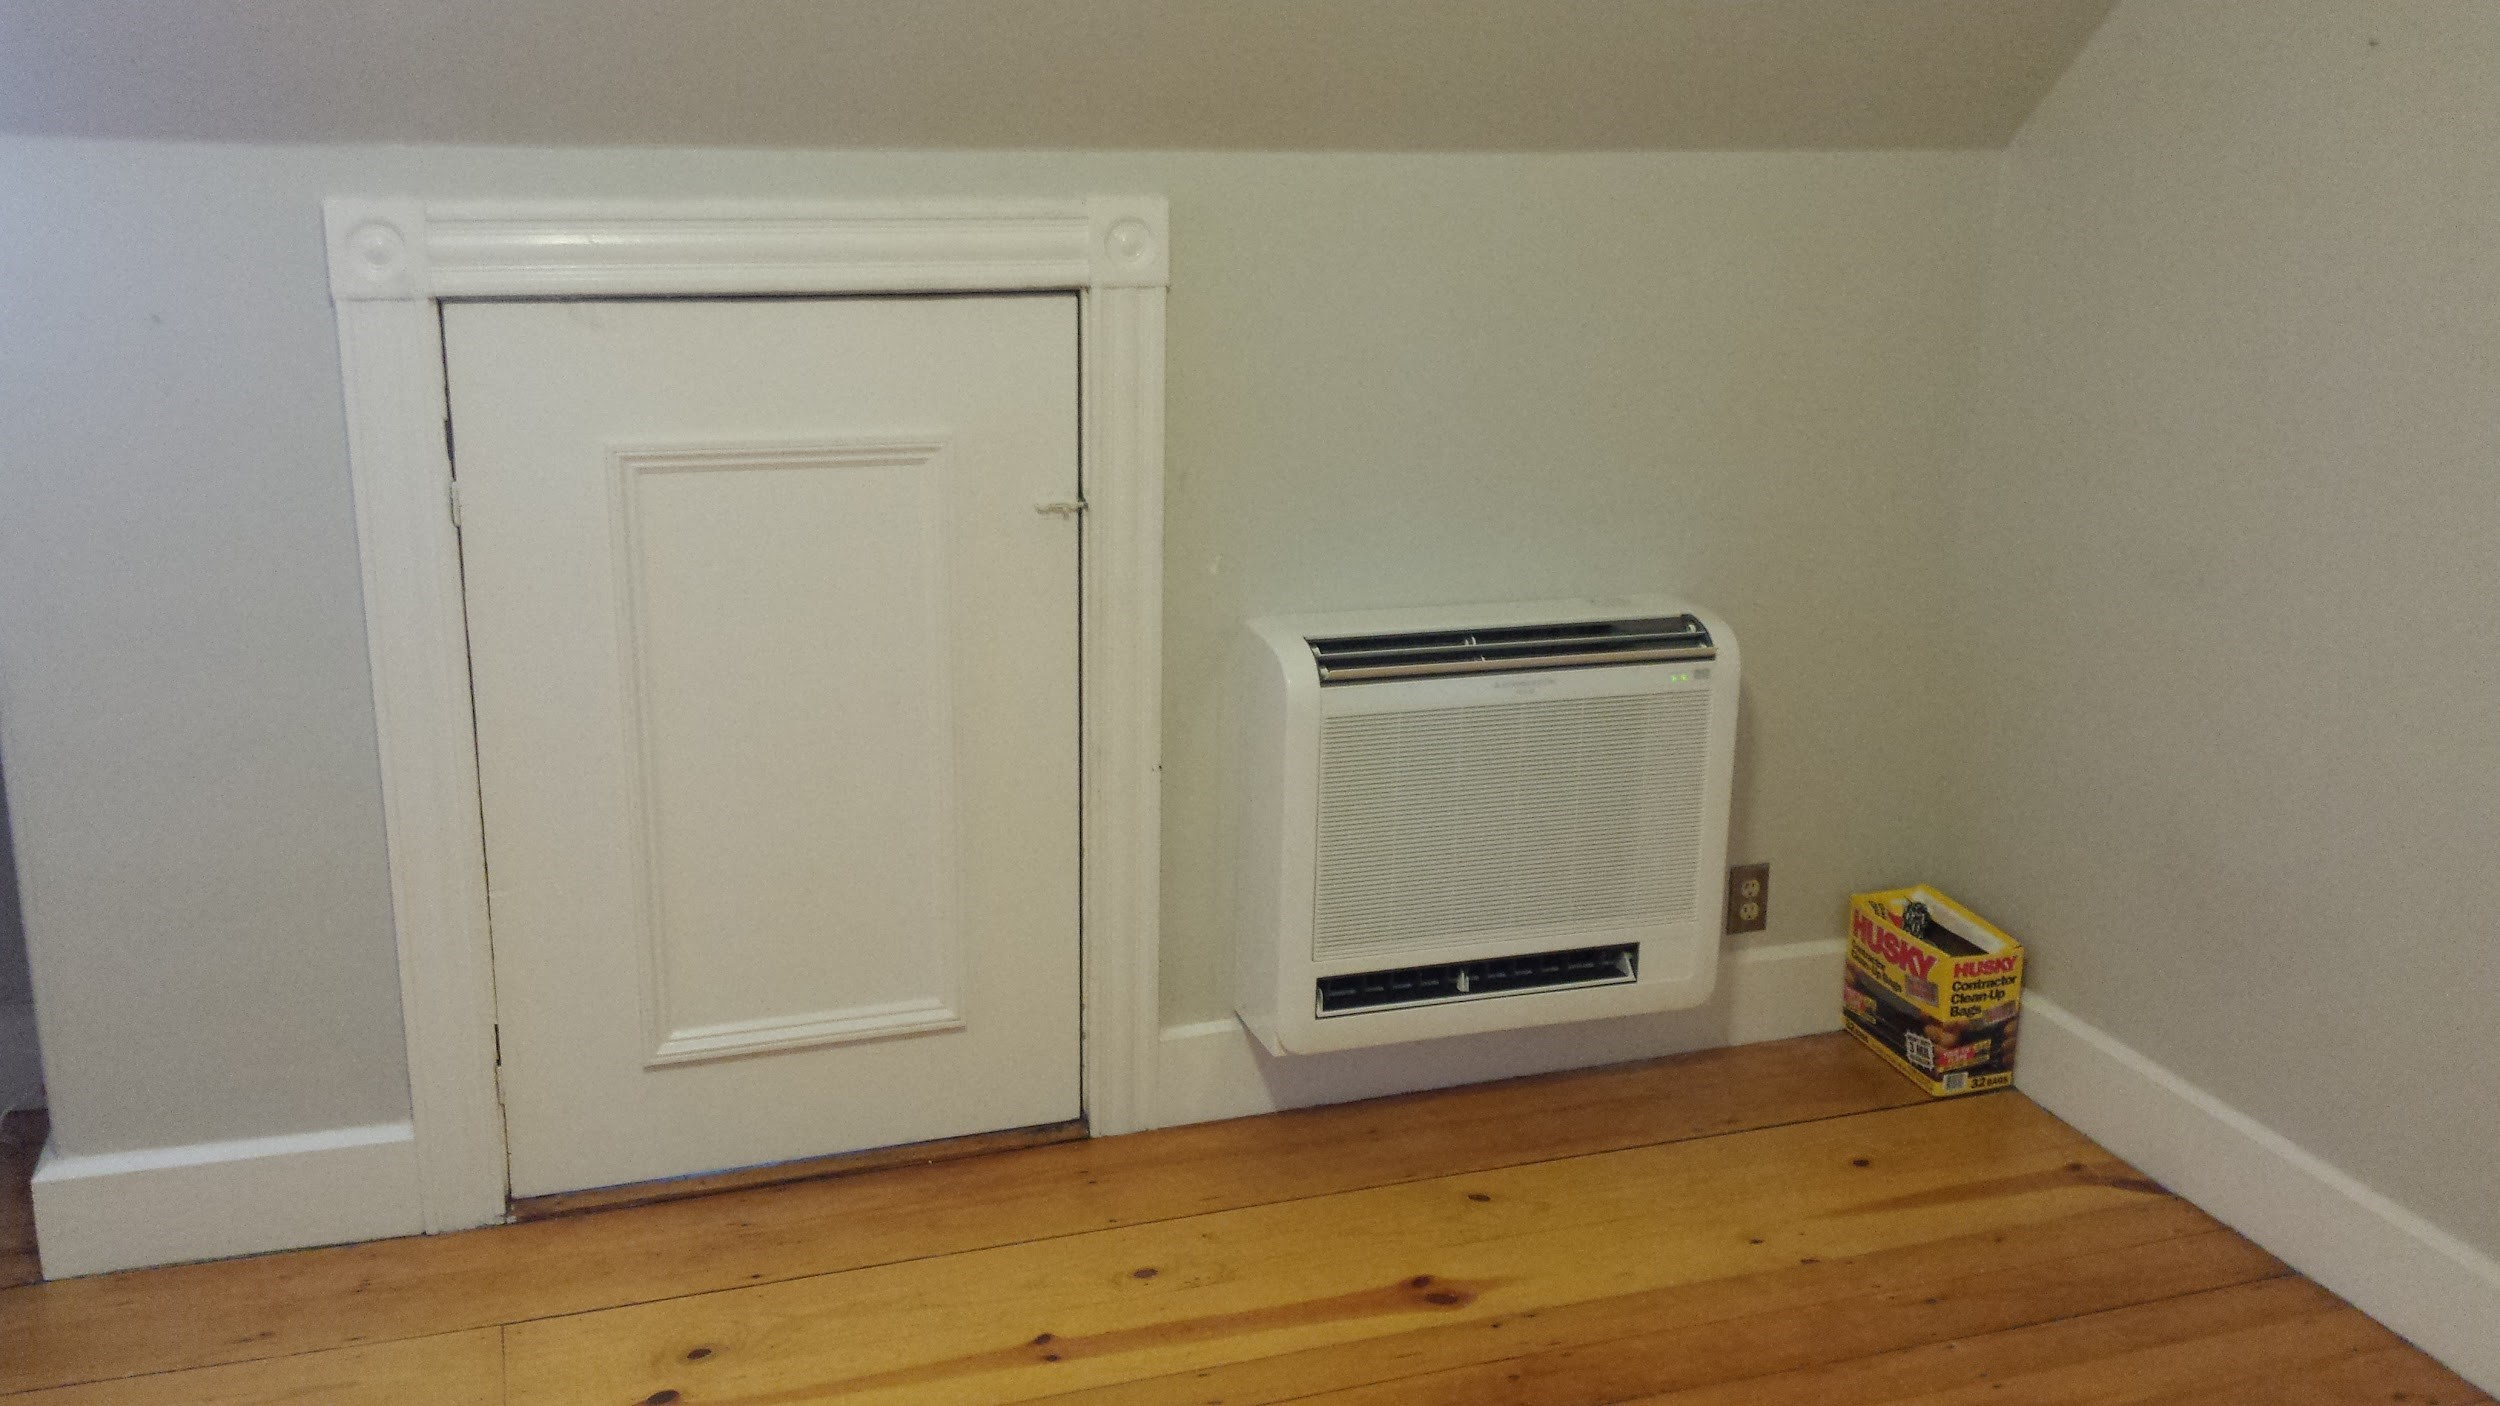 Mitsubishi ductless floor AC installed in Jamaica Plain Victorian home.